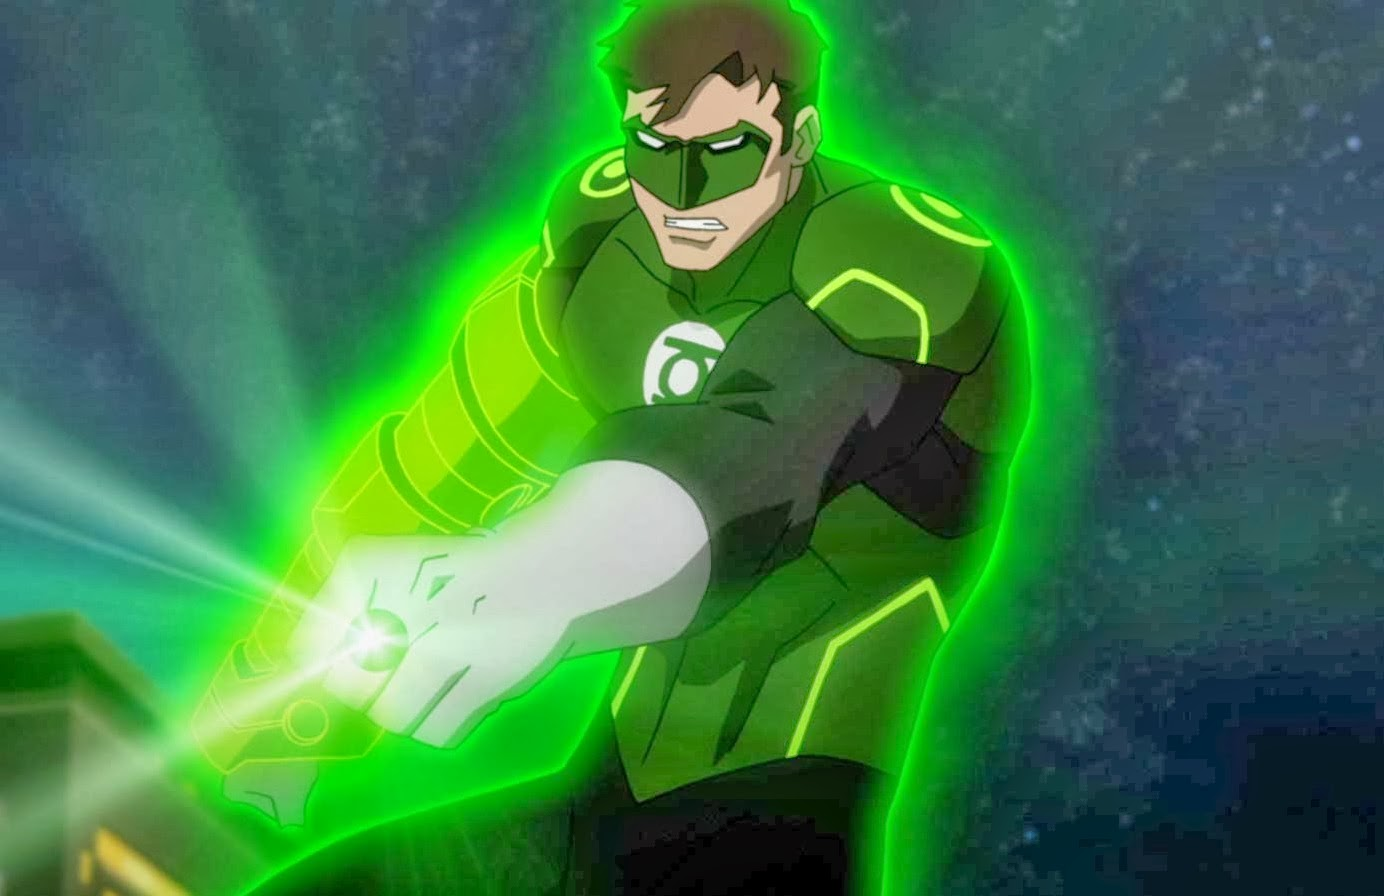 Justice League Green Lantern 28 Images The Clip From